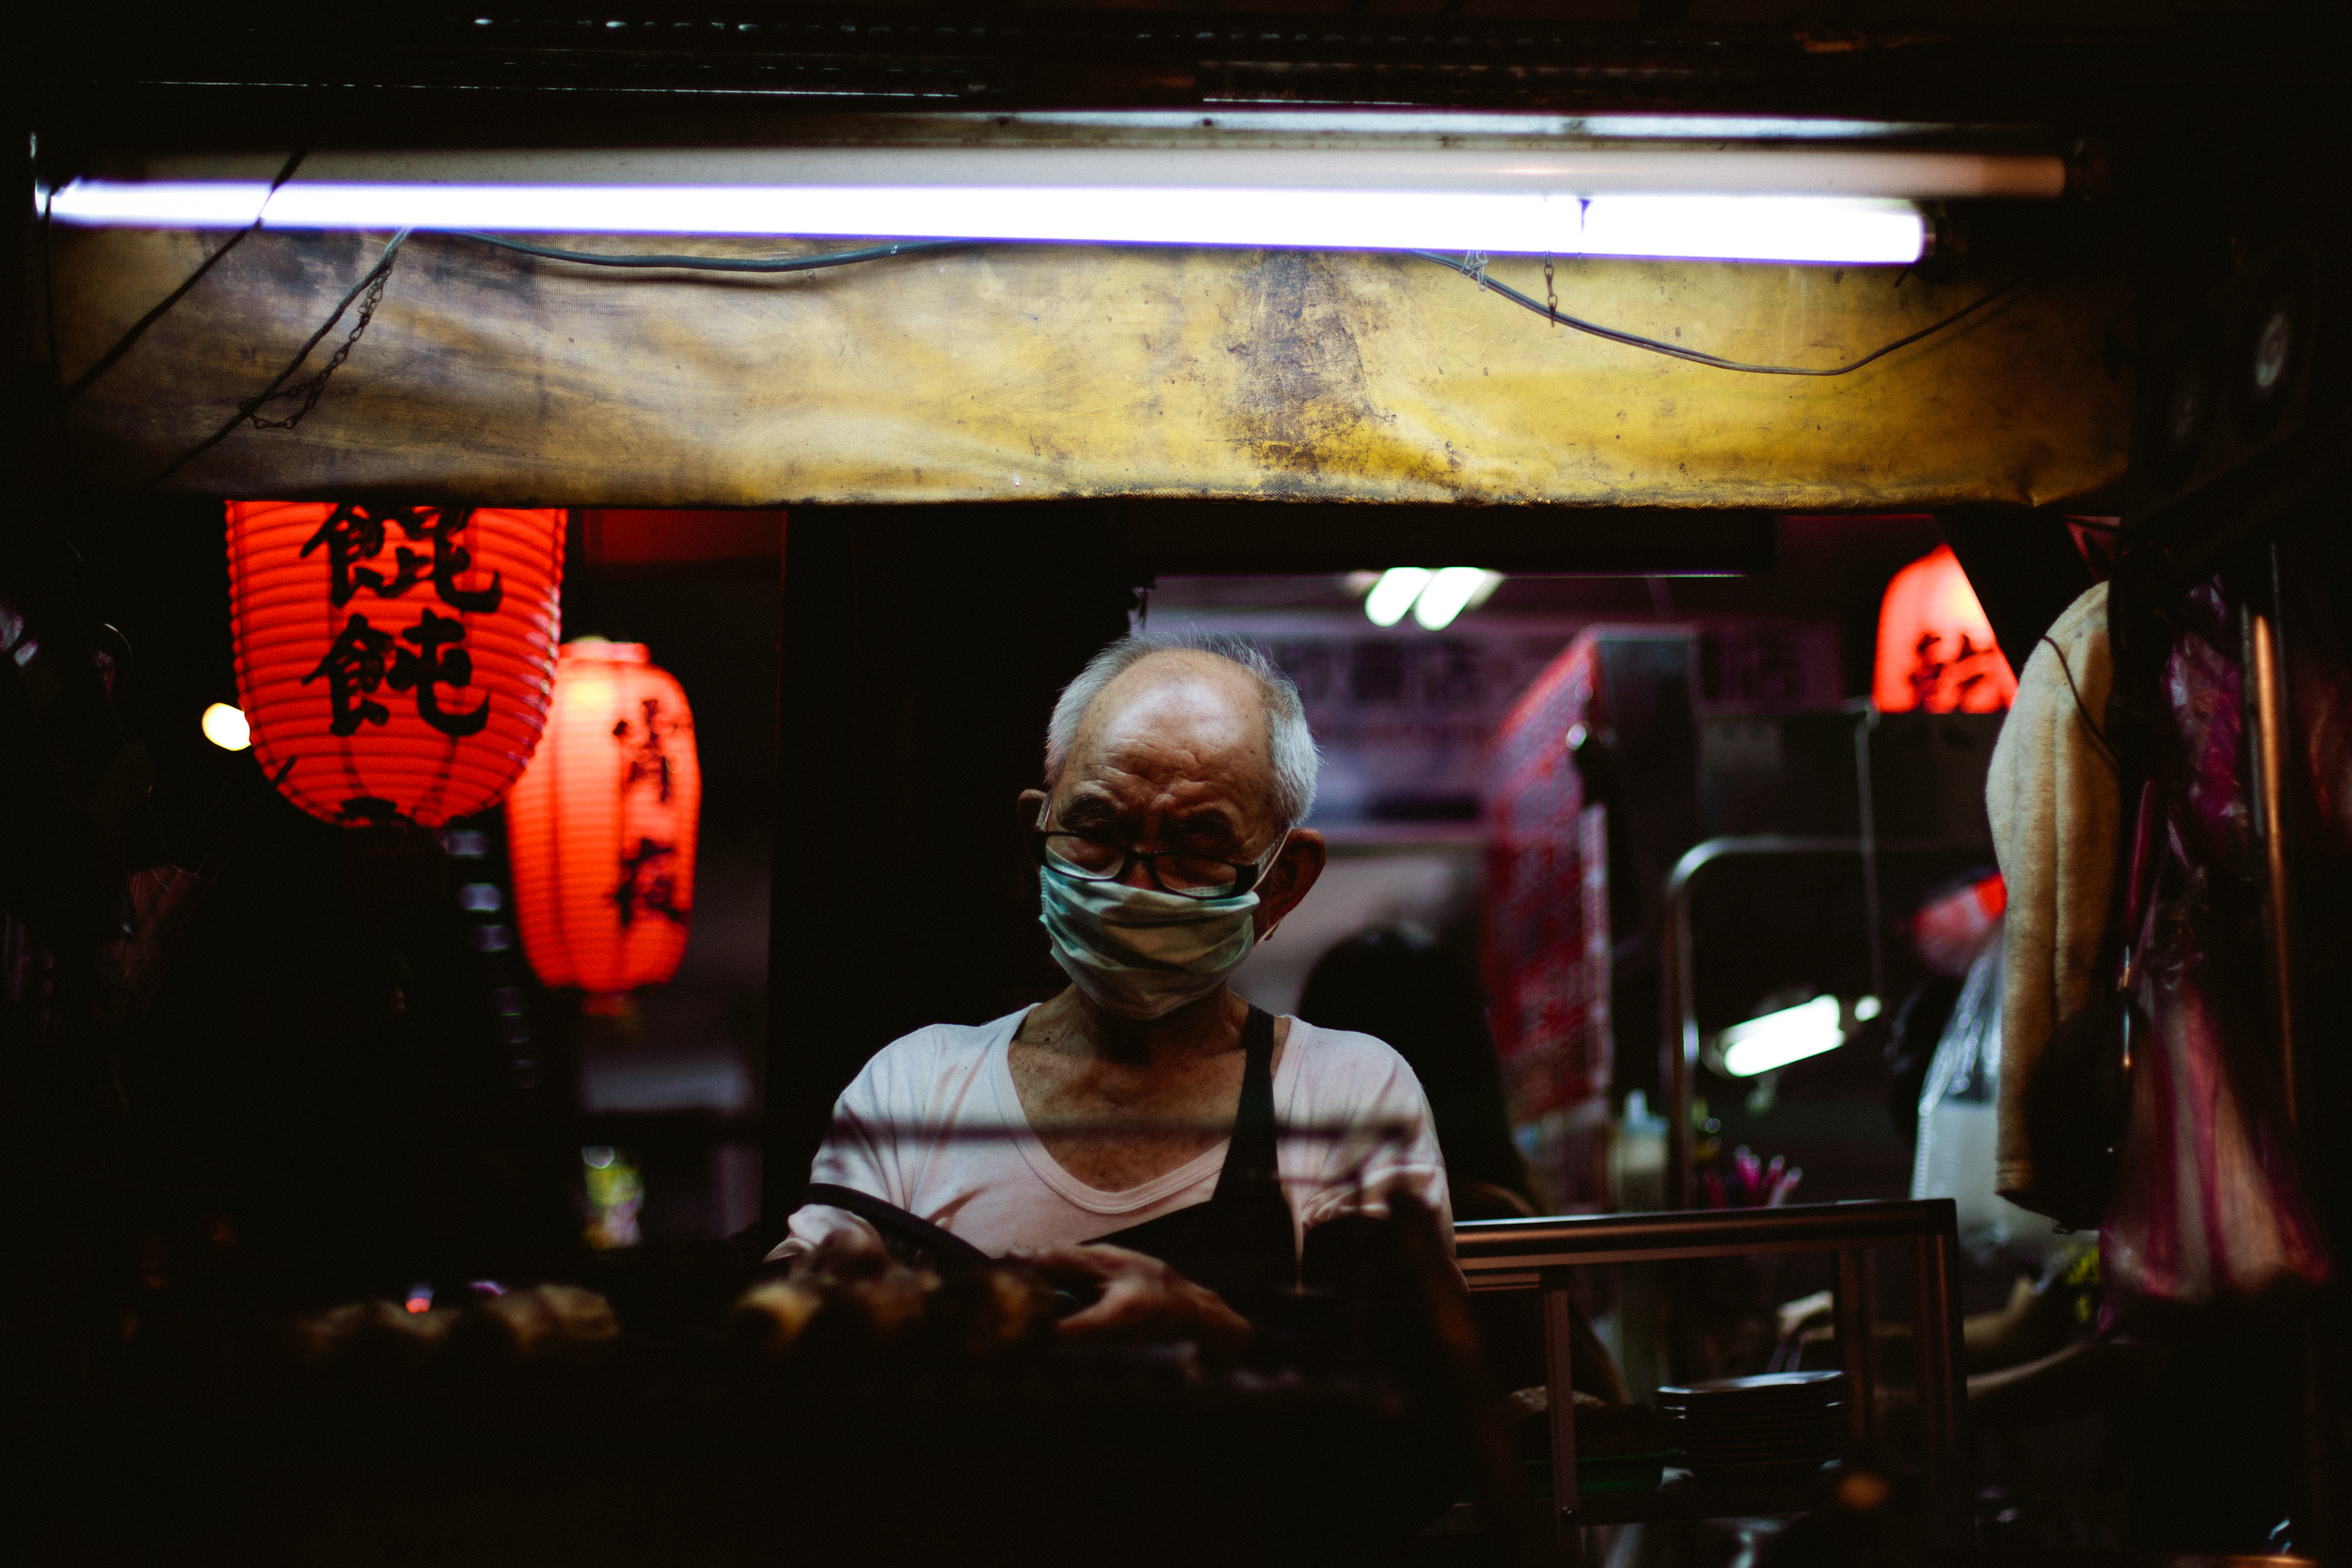 Night Market Vendor